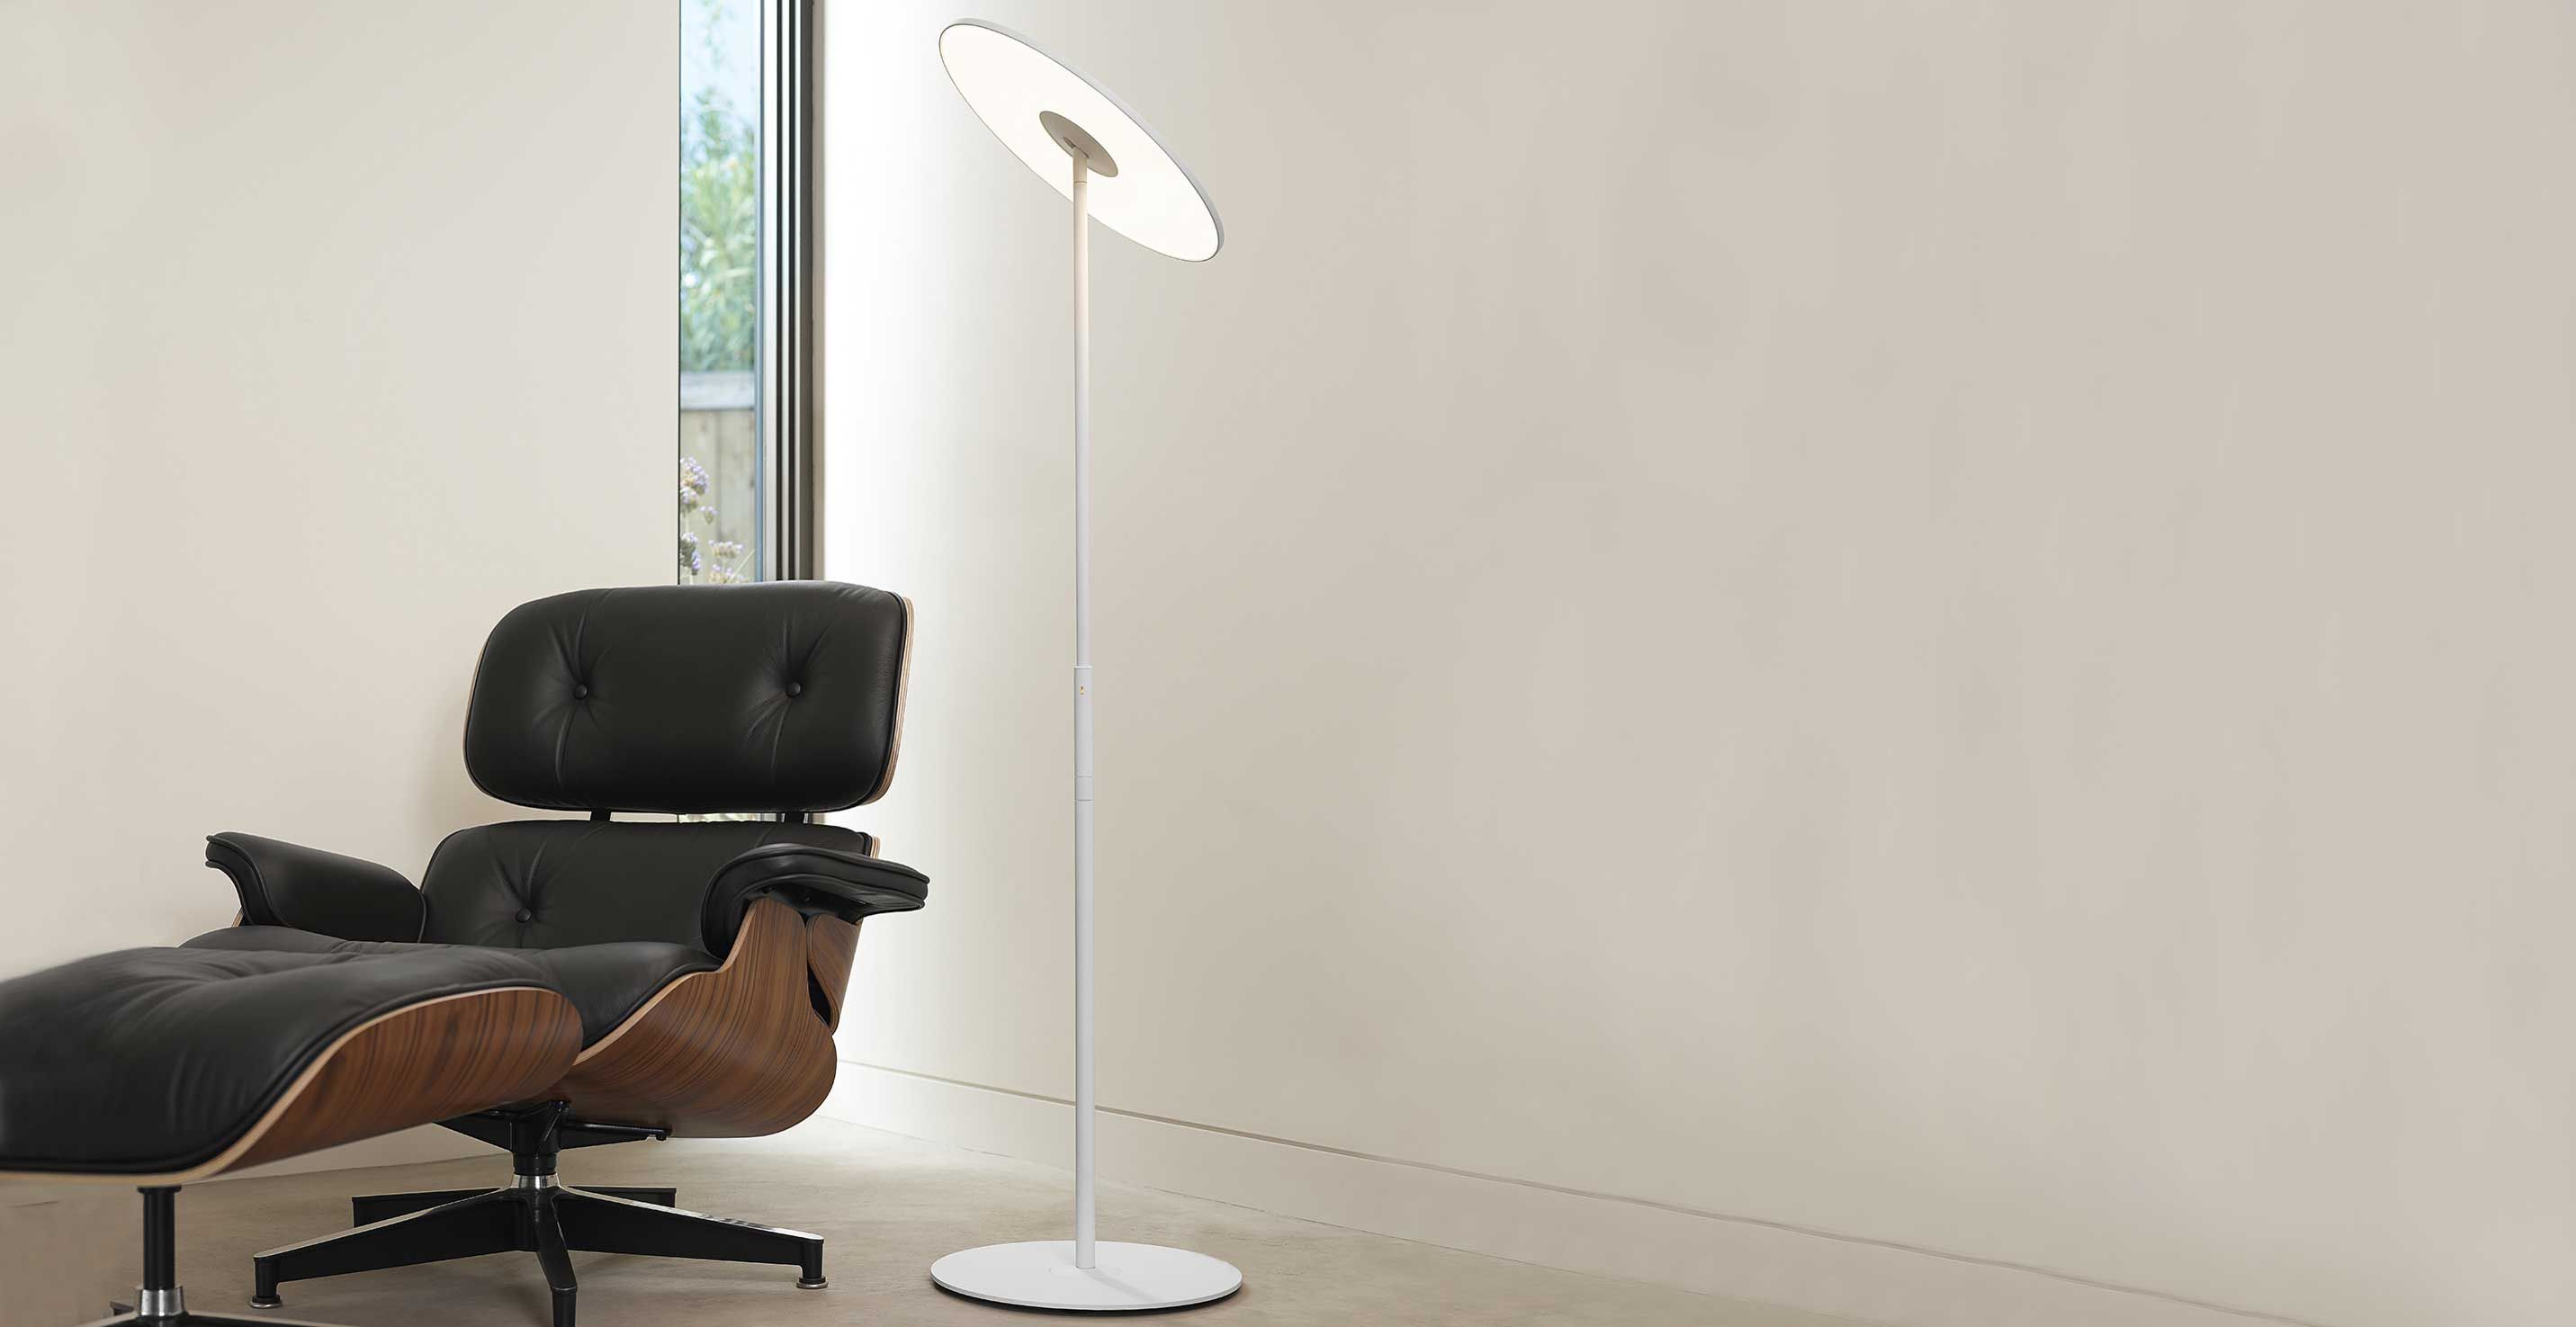 Circa Floor Lamp by Pablo available at Hold It Contemporary Home in San Diego